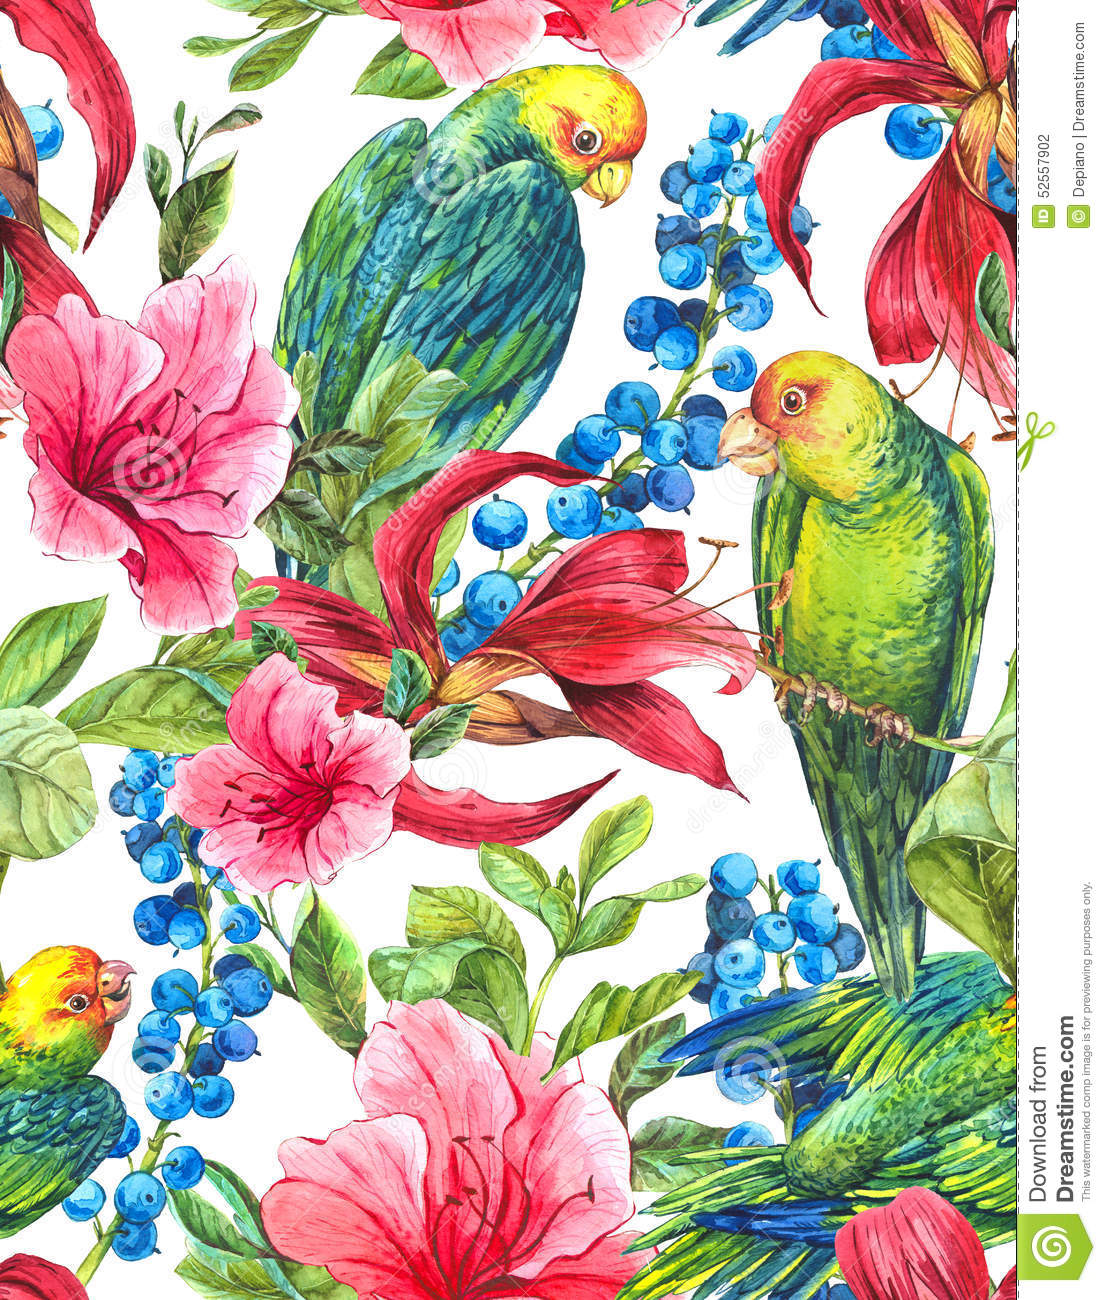 Vintage Style Tropical Bird And Flowers Background: Seamless Background With Tropical Flowers, Parrots Stock